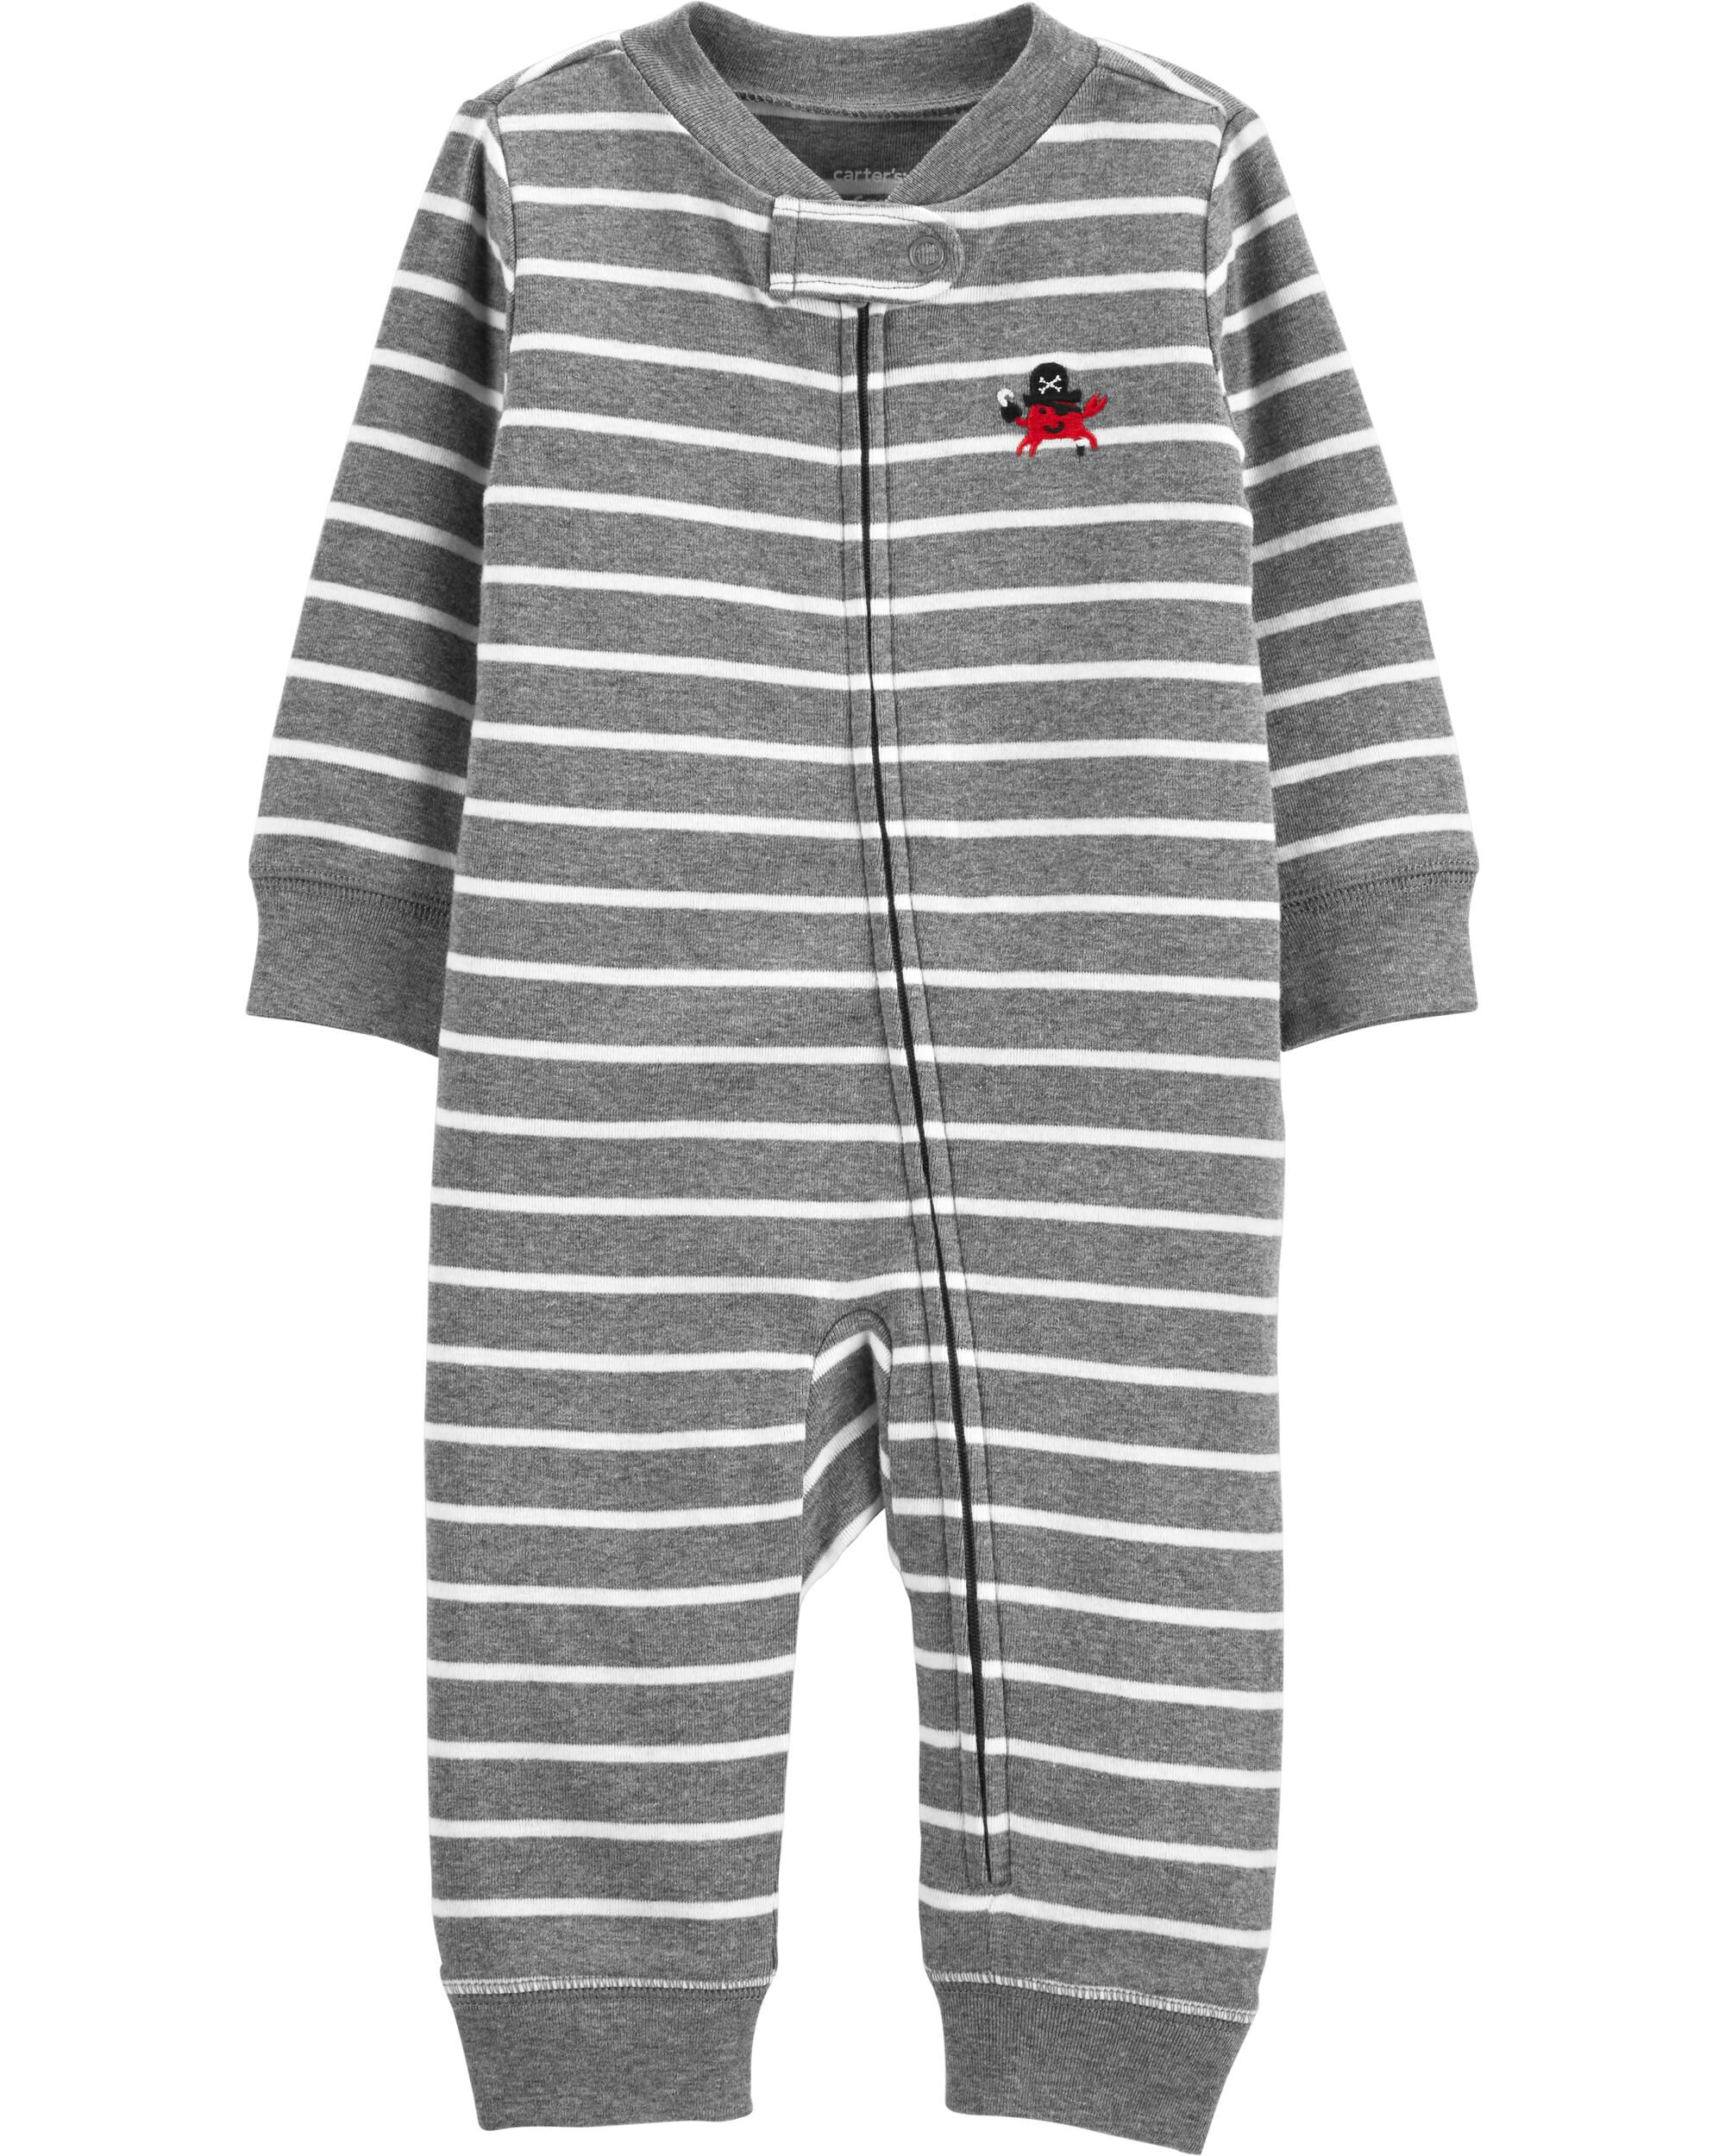 *Clearance*  Striped Zip-Up Cotton Footless Slee...